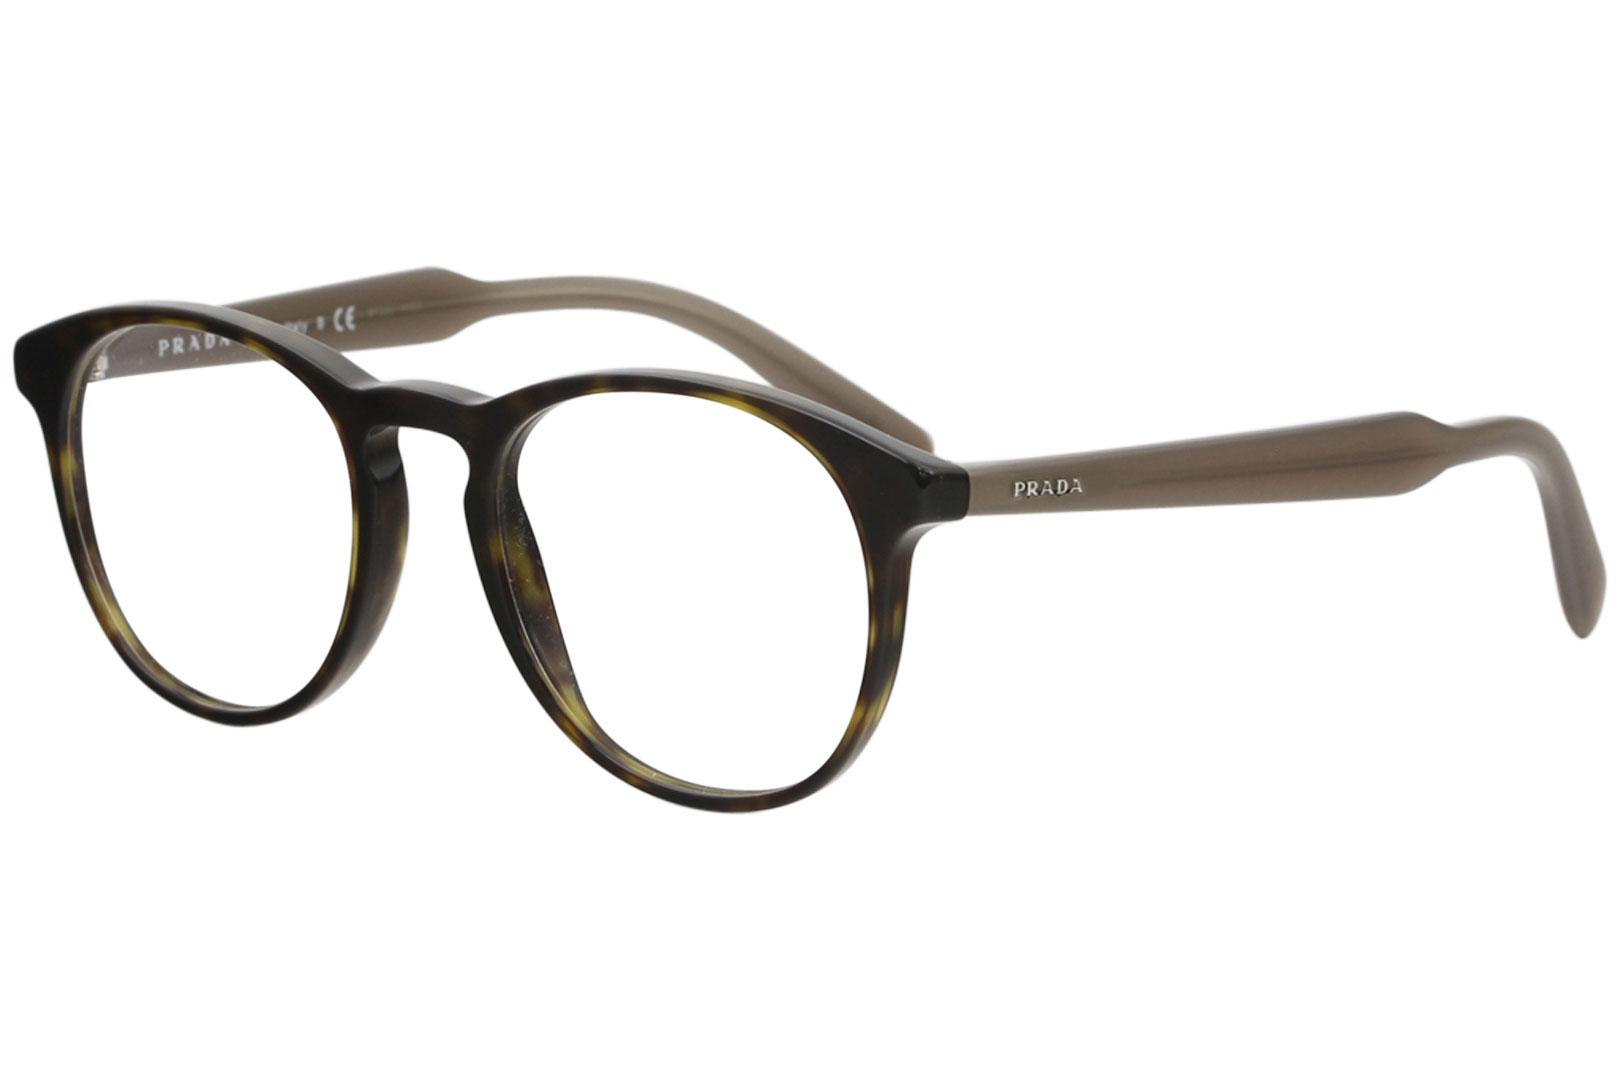 01fd95e7288 Prada Men s Eyeglasses VPR19S VPR 19S Full Rim Optical Frame